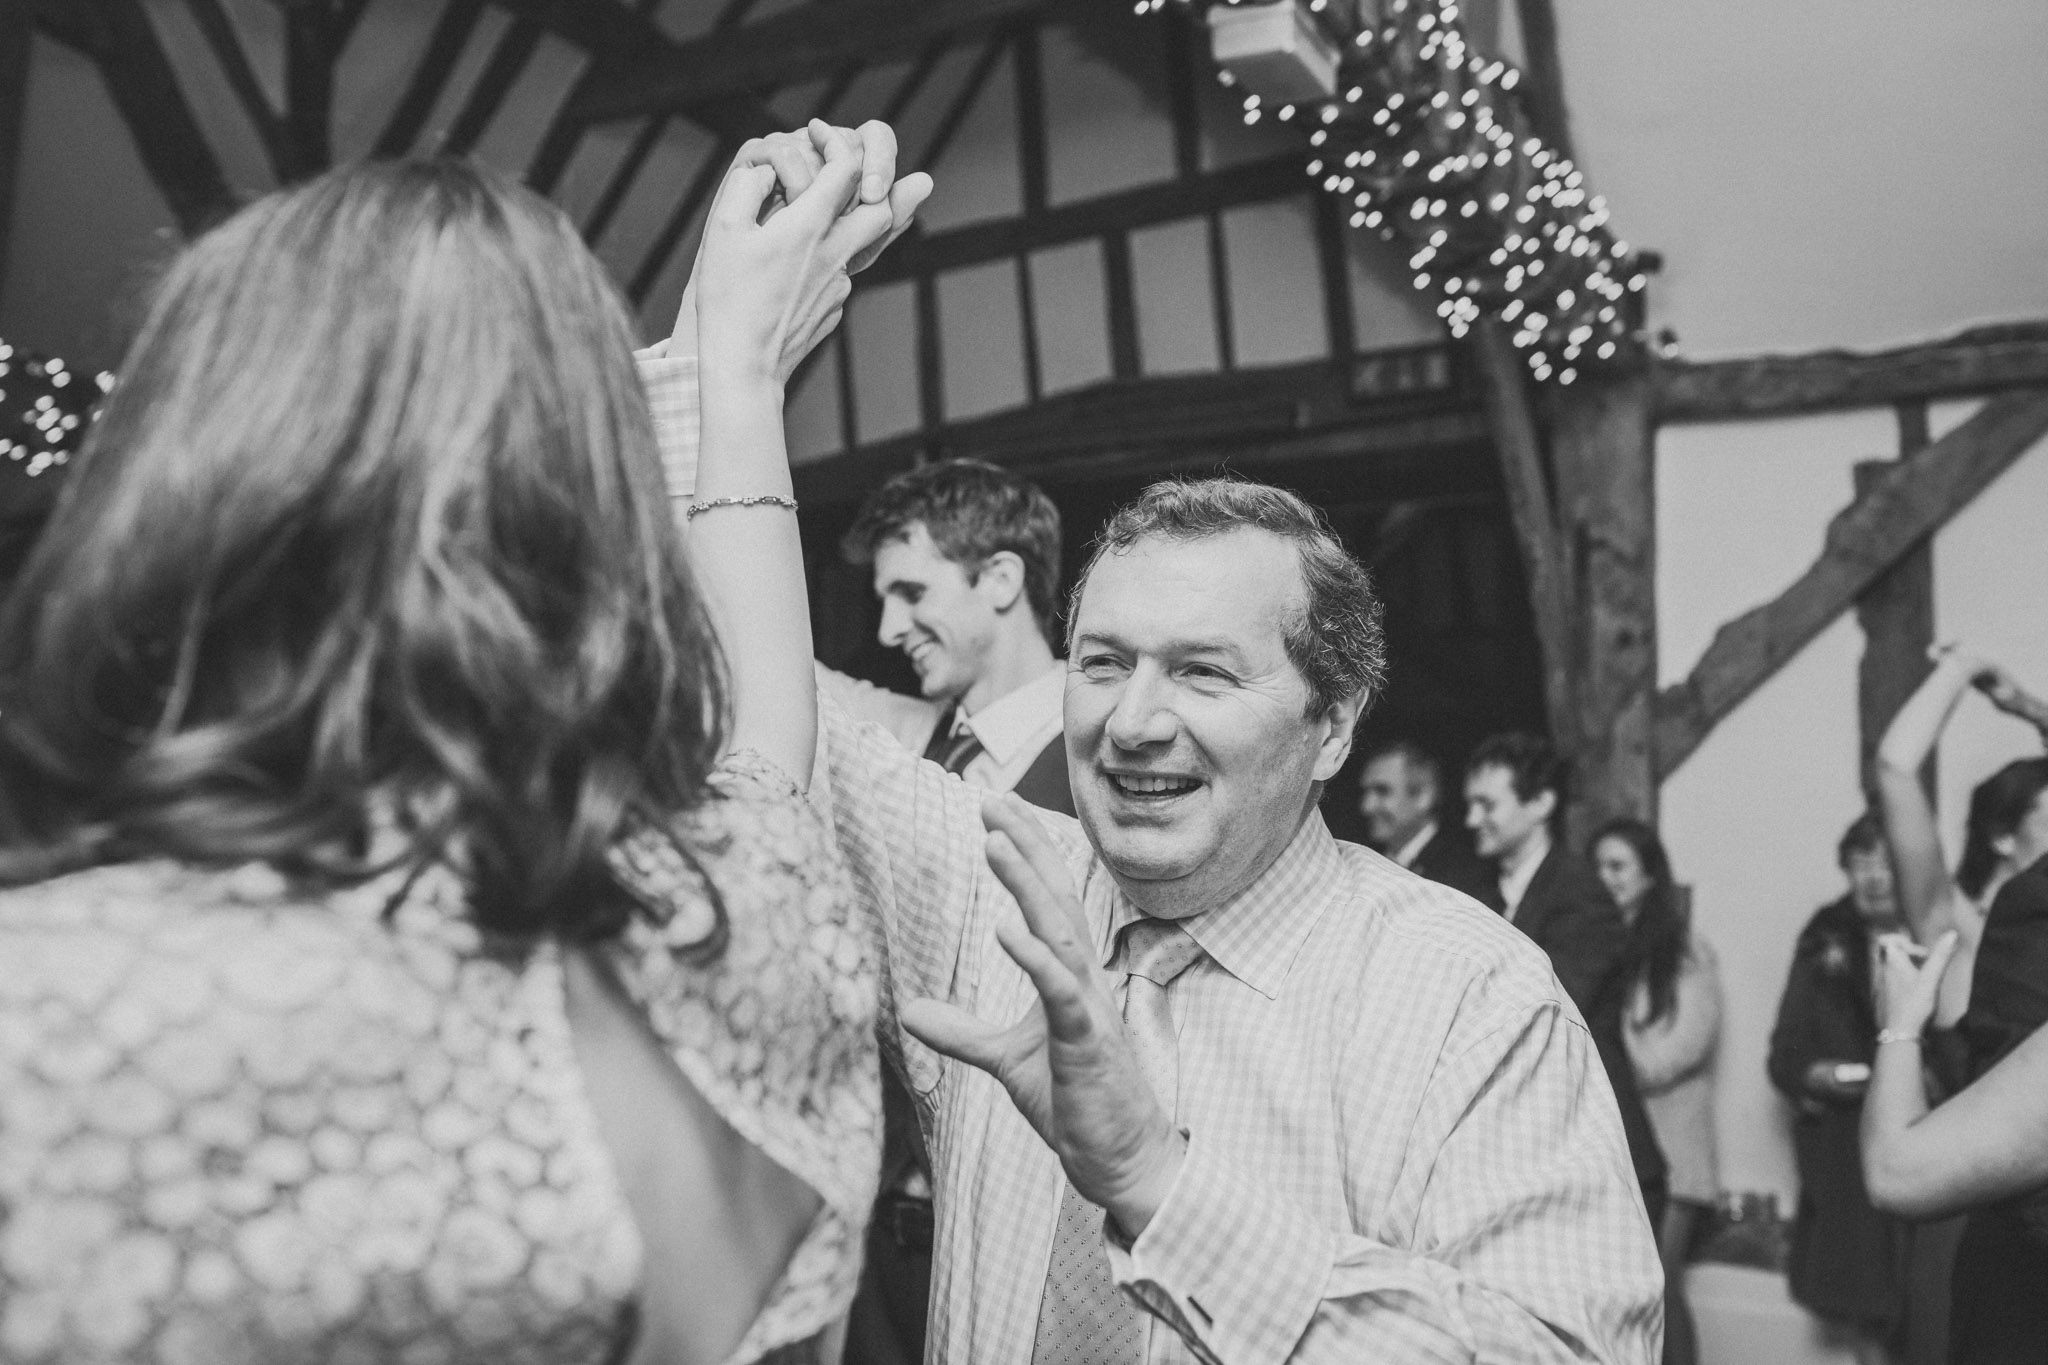 hambleden_henley_on_thames_wedding_073.jpg